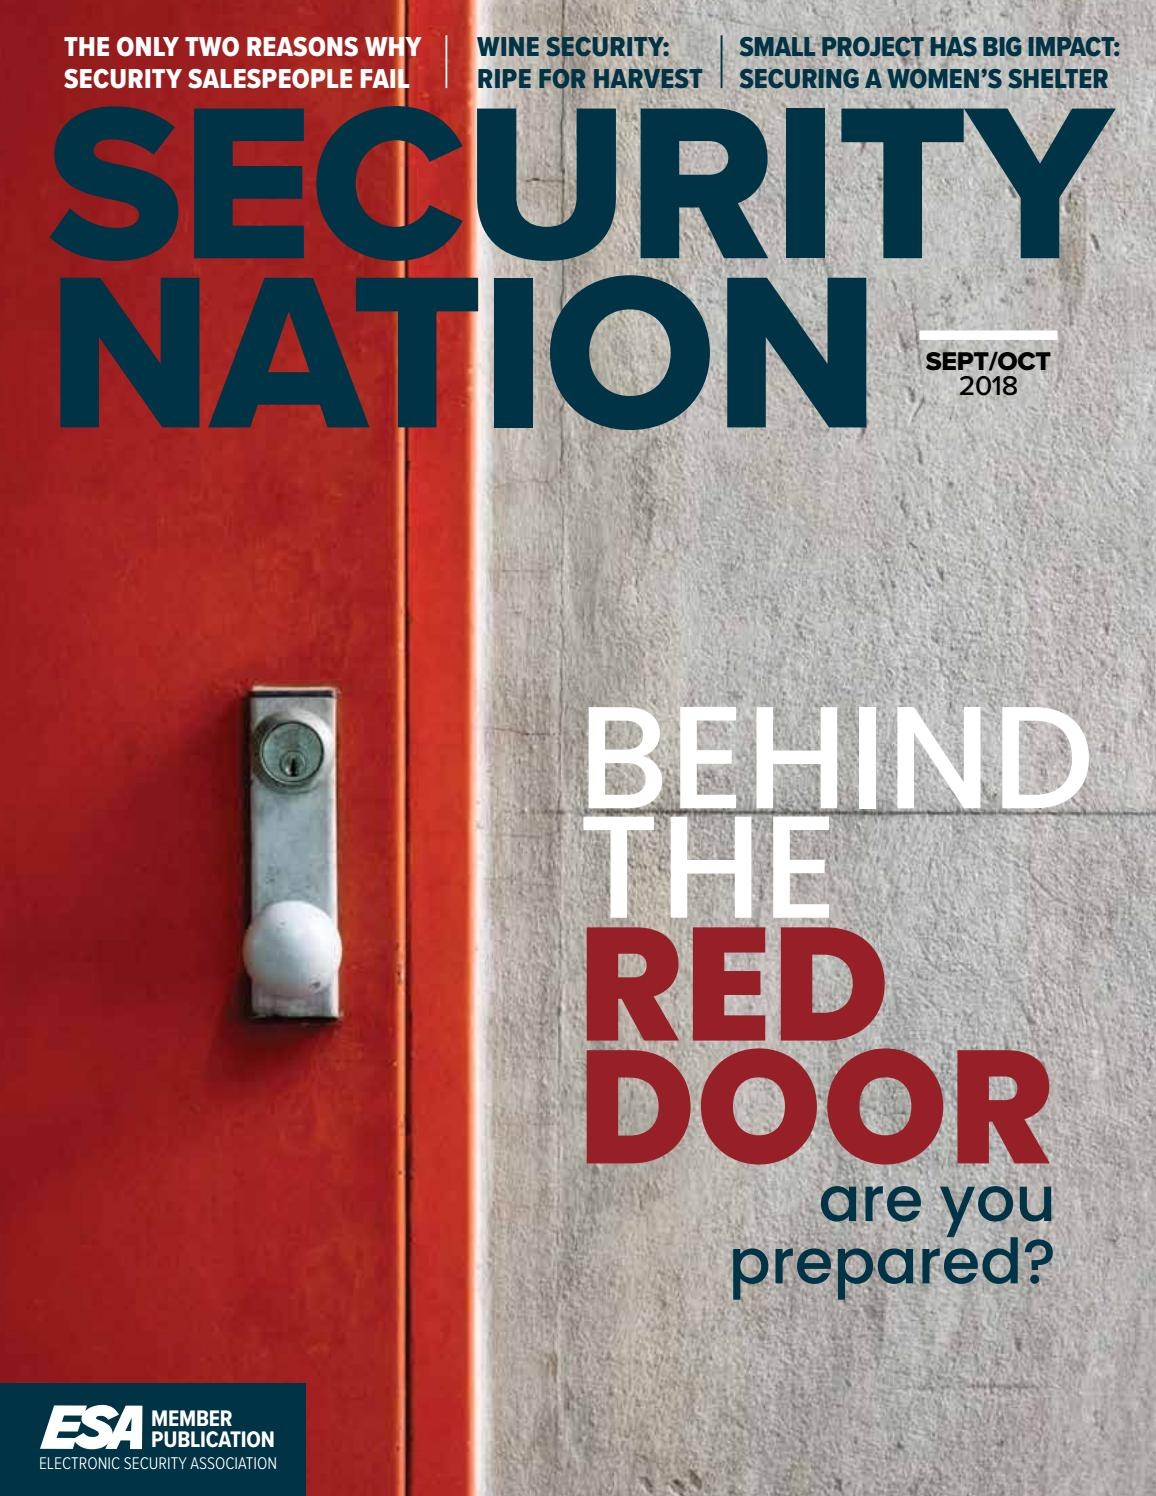 Security Nation 2018 Septoct By Jamie Christian Issuu